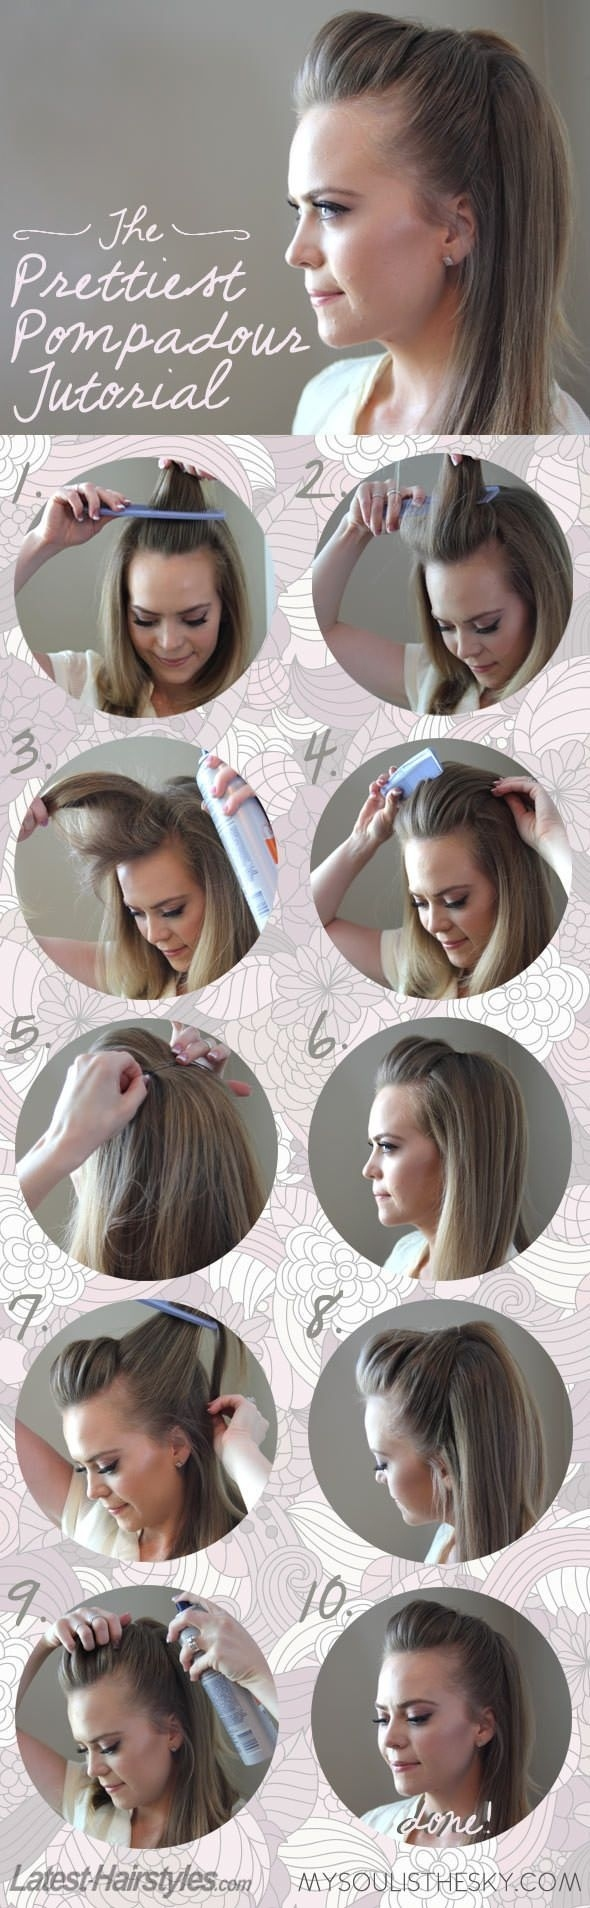 23 Gorgeous Hairstyle Ideas and Tutorials that can be done in 10 minutes  (10)